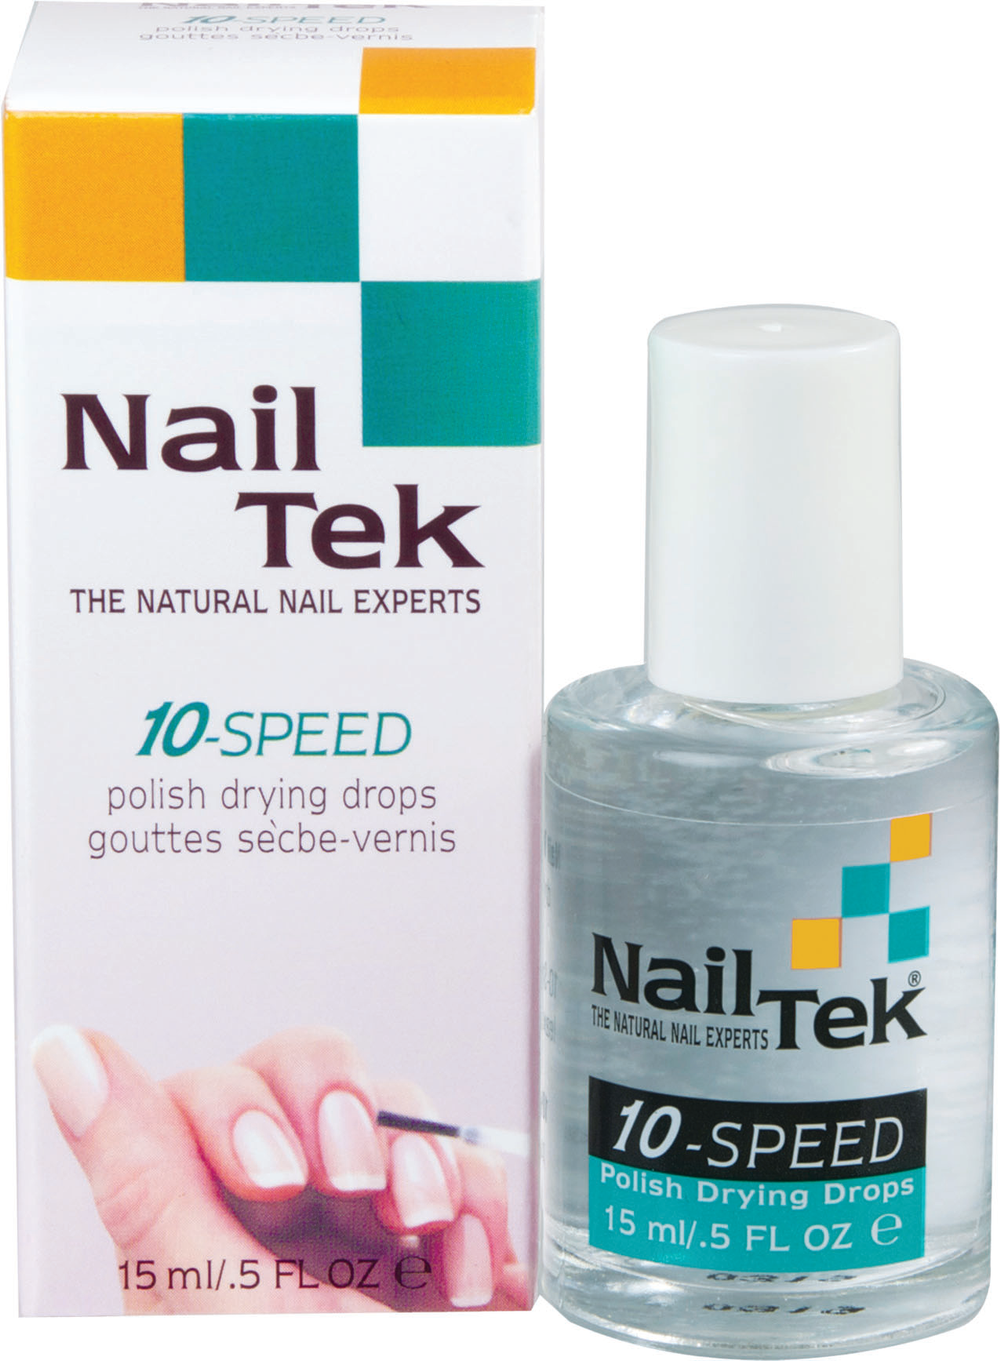 """<p><a href=""""http://www.nailtek.com/"""">Nail Tek</a> 10-Speed Polish Drying Drops are a fast, effective way to dry polished nails to a smooth, shiny finish. To use, apply one or two drops over a fresh manicure. After about one minute, the nails will be dry to the touch and then completely smudge-proof in another five to seven.</p>"""